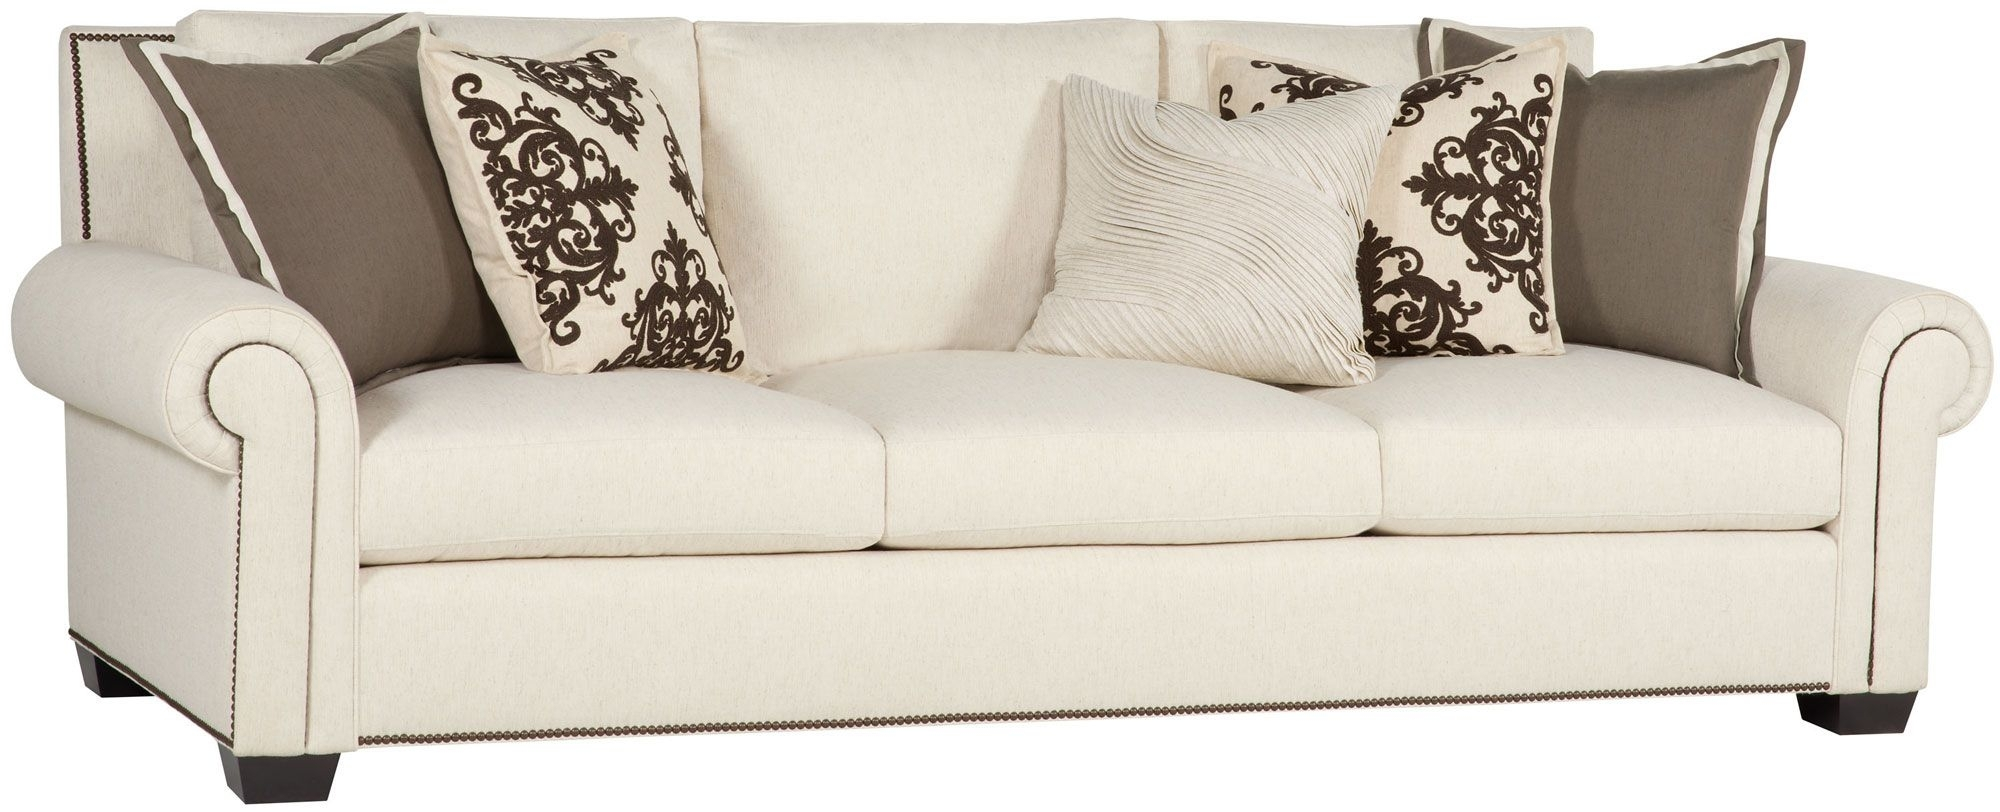 Sofa | Bernhardt | Hearthroom Decor | Pinterest | Sofa Shop, Sofa Within Johnson City Tn Sectional Sofas (Image 9 of 10)